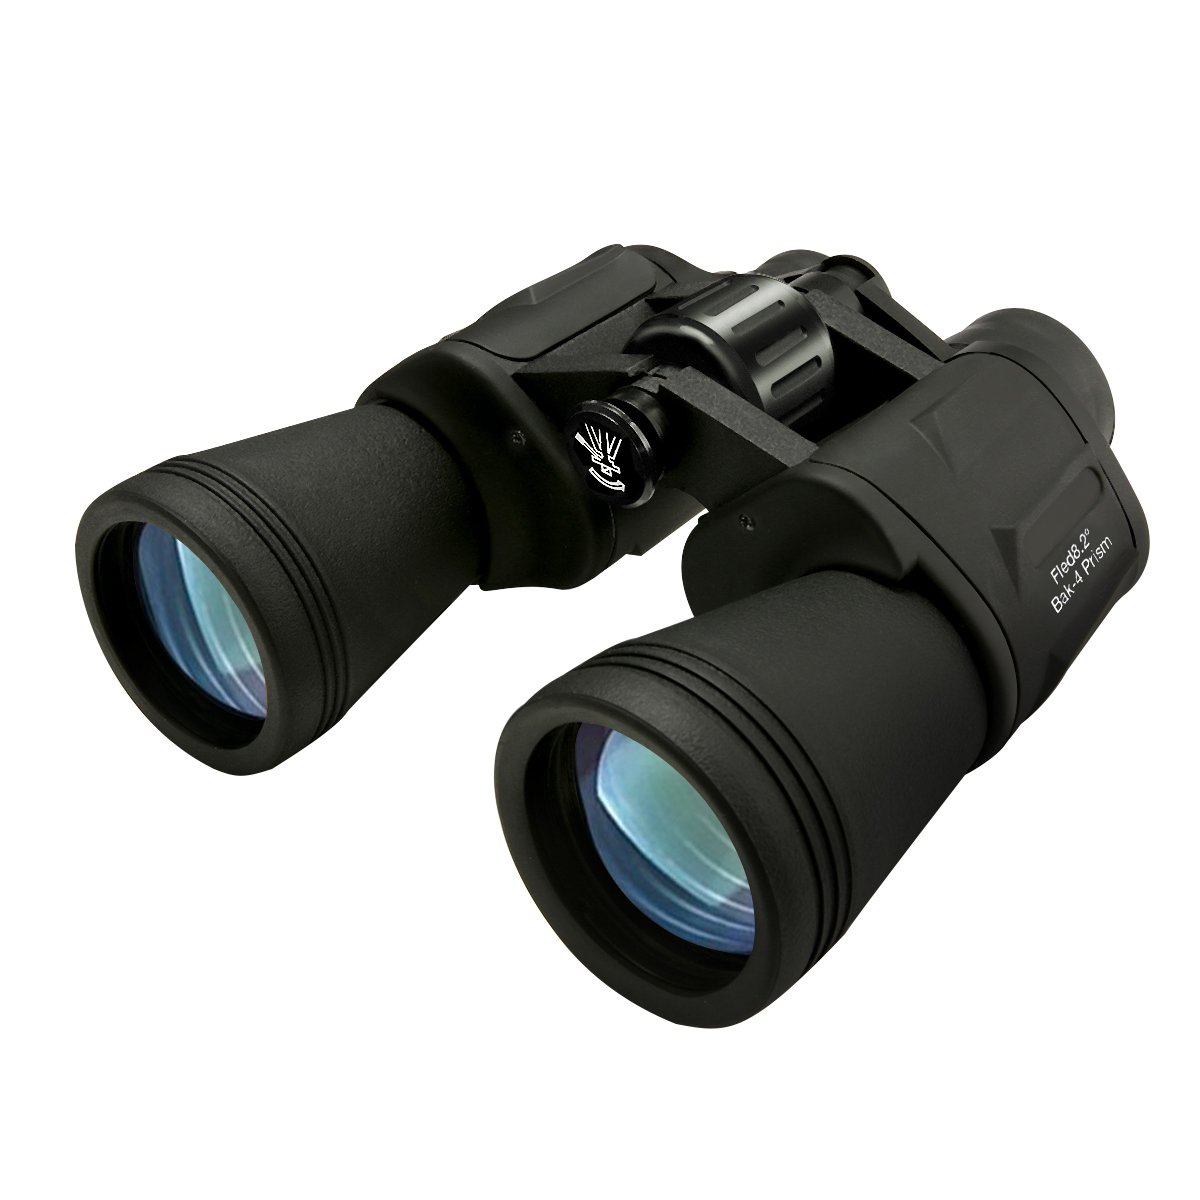 10x50 Binoculars for Adults,SGODDE Super High Powered Surveillance Binoculars- HD Vision,Wide Angle,Fully Coated Lens Prism Binoculars for Outdoor Travelling Sightseeing Wildlife Watching Hunting by SGODDE